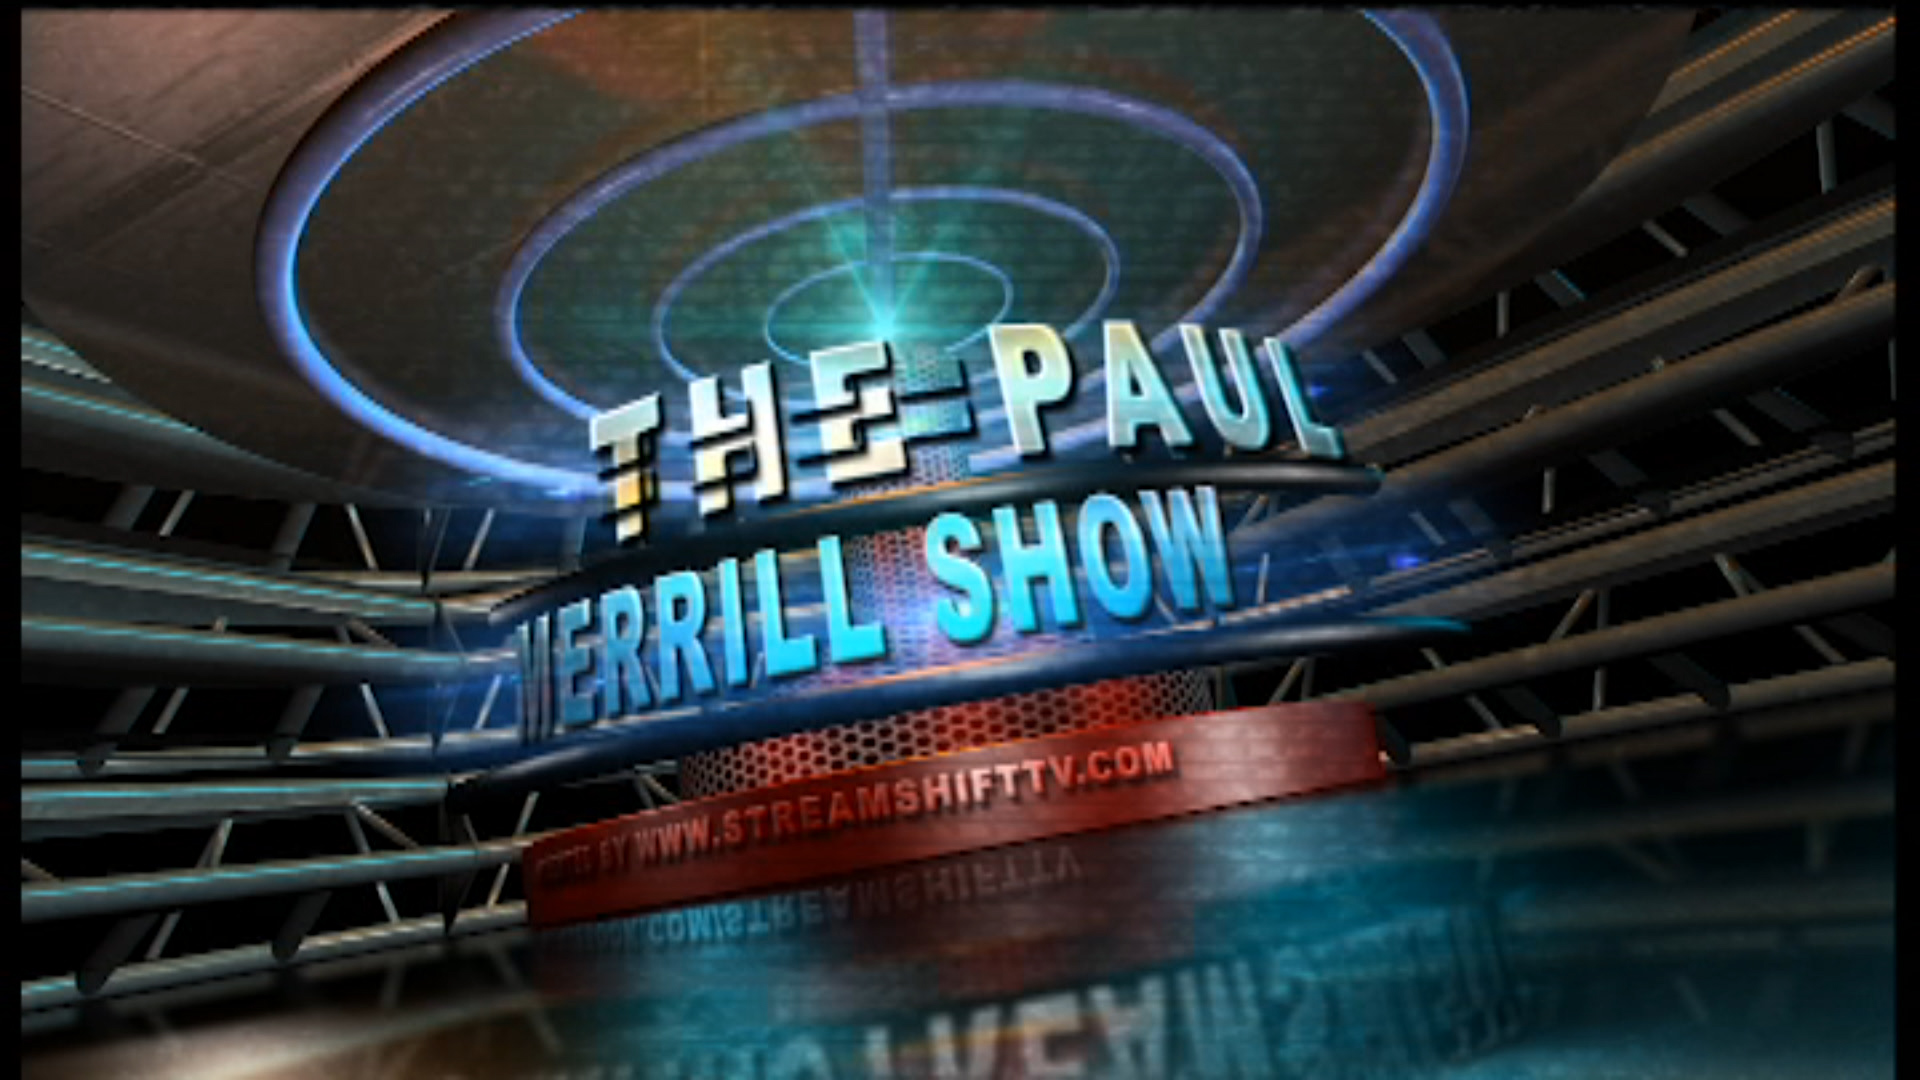 The Paul Merrill Show - August 8th, 2019